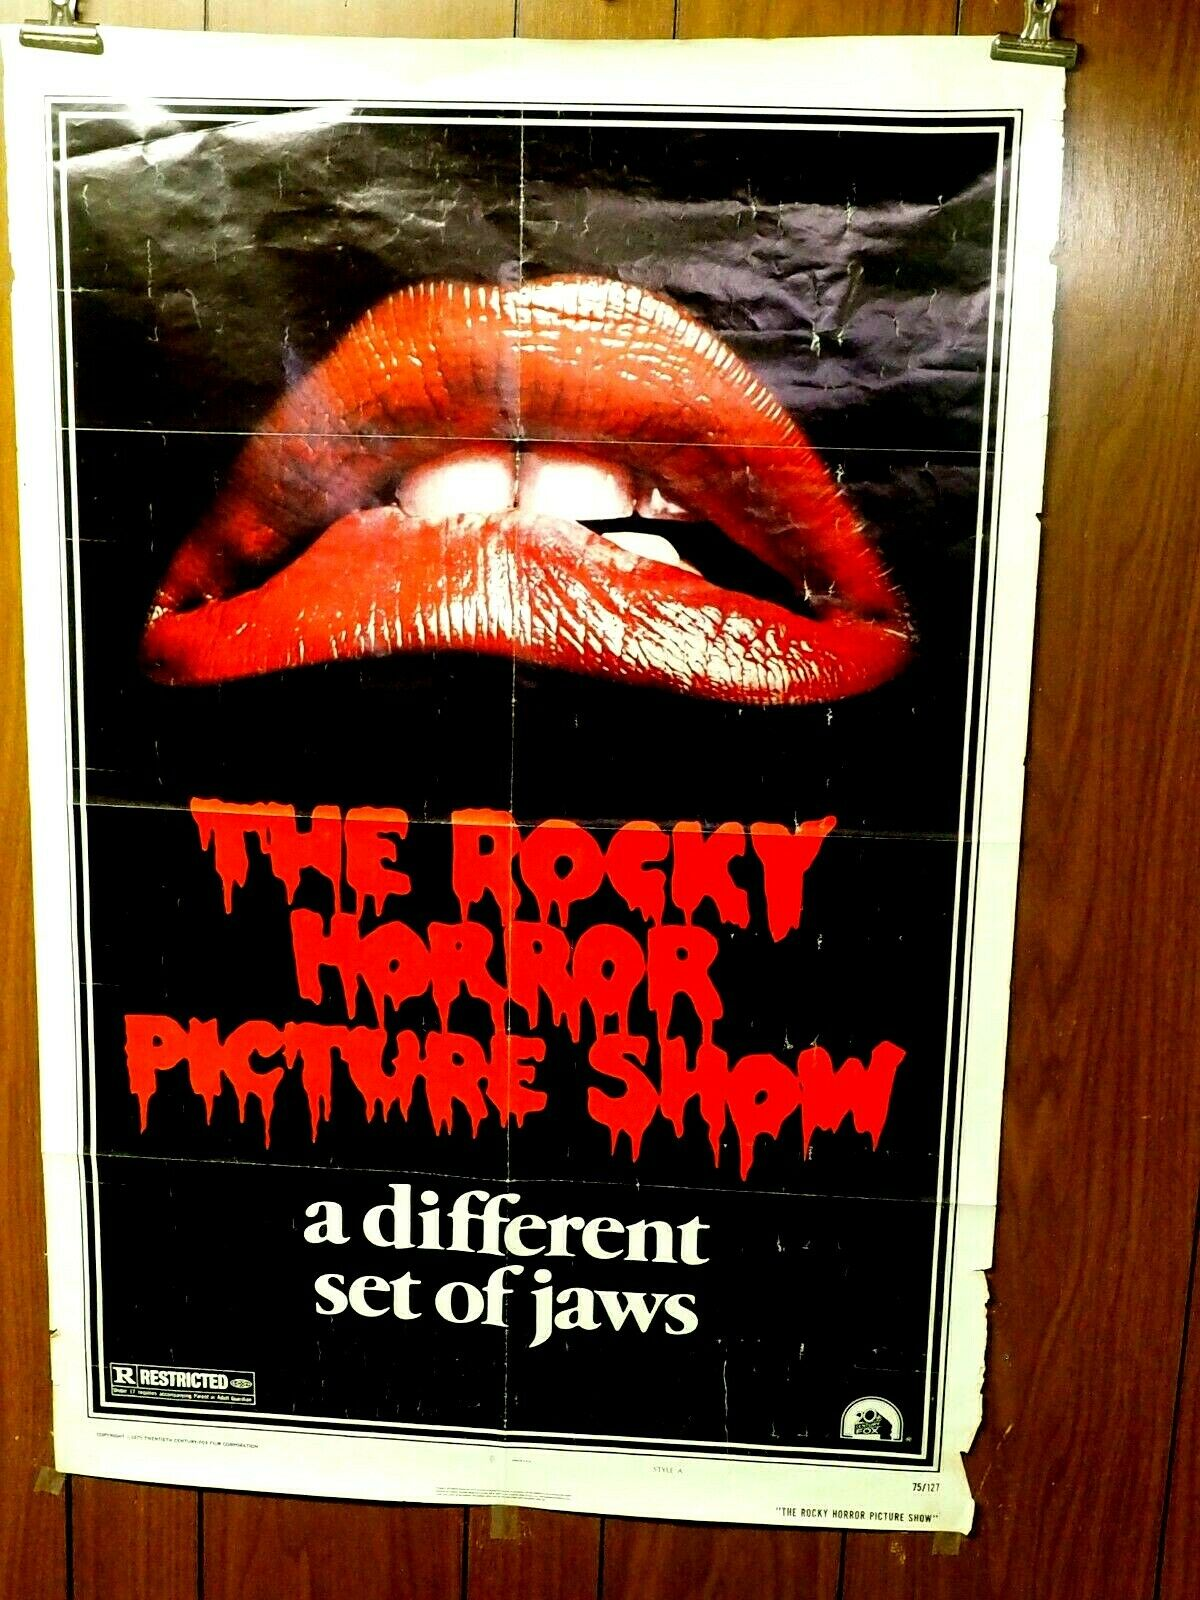 The Rocky Horror Picture Show 1975 Original Folded One Sheet Poster 27x41 - $195.00